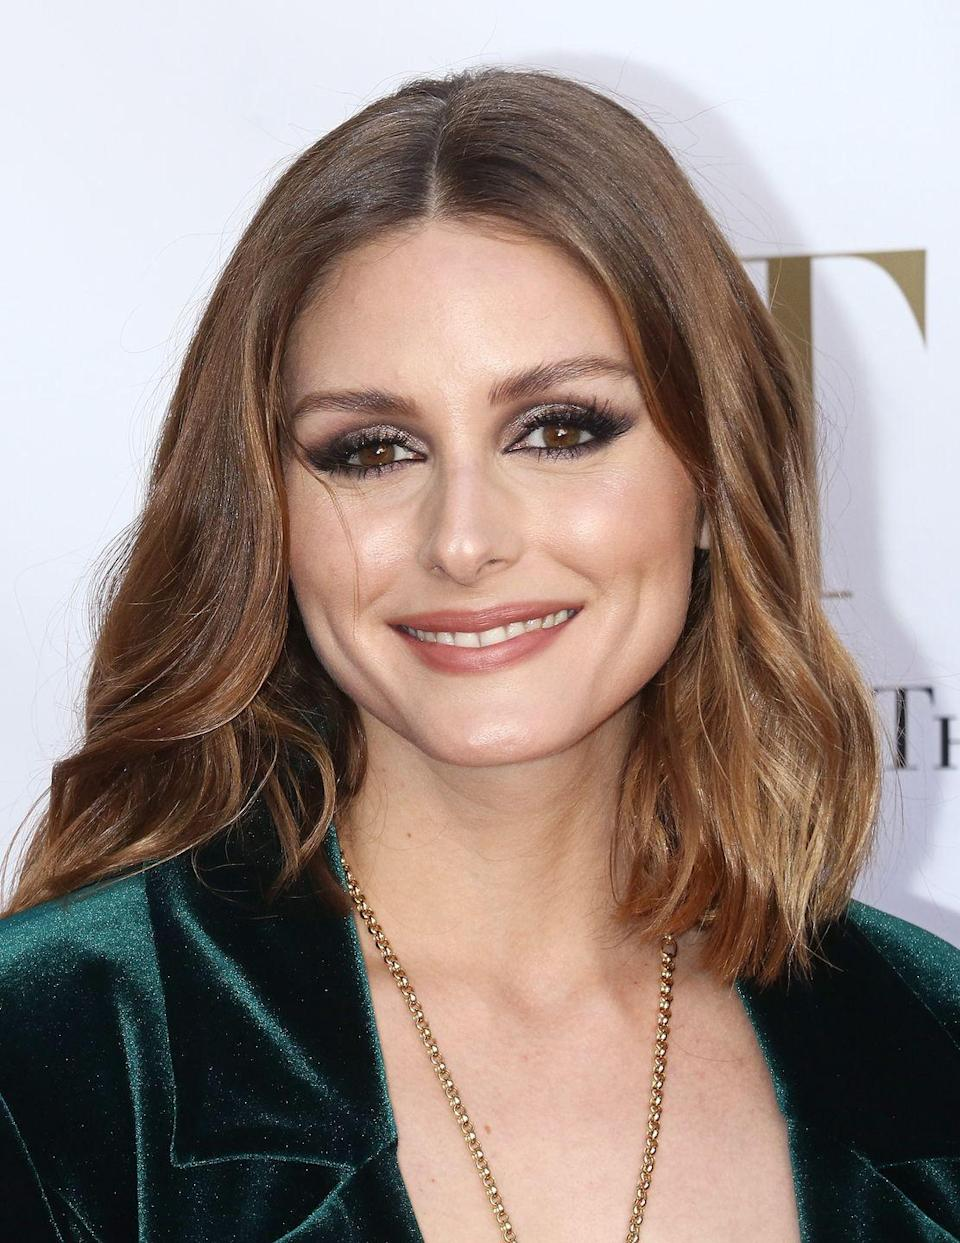 <p>Lint also expects to see more ashy shades on brunettes like <strong>Olivia Palermo</strong>. If you have dark hair but want to liven it up for the months ahead, you should consider requesting this softer tone the next time you're in the salon. </p>